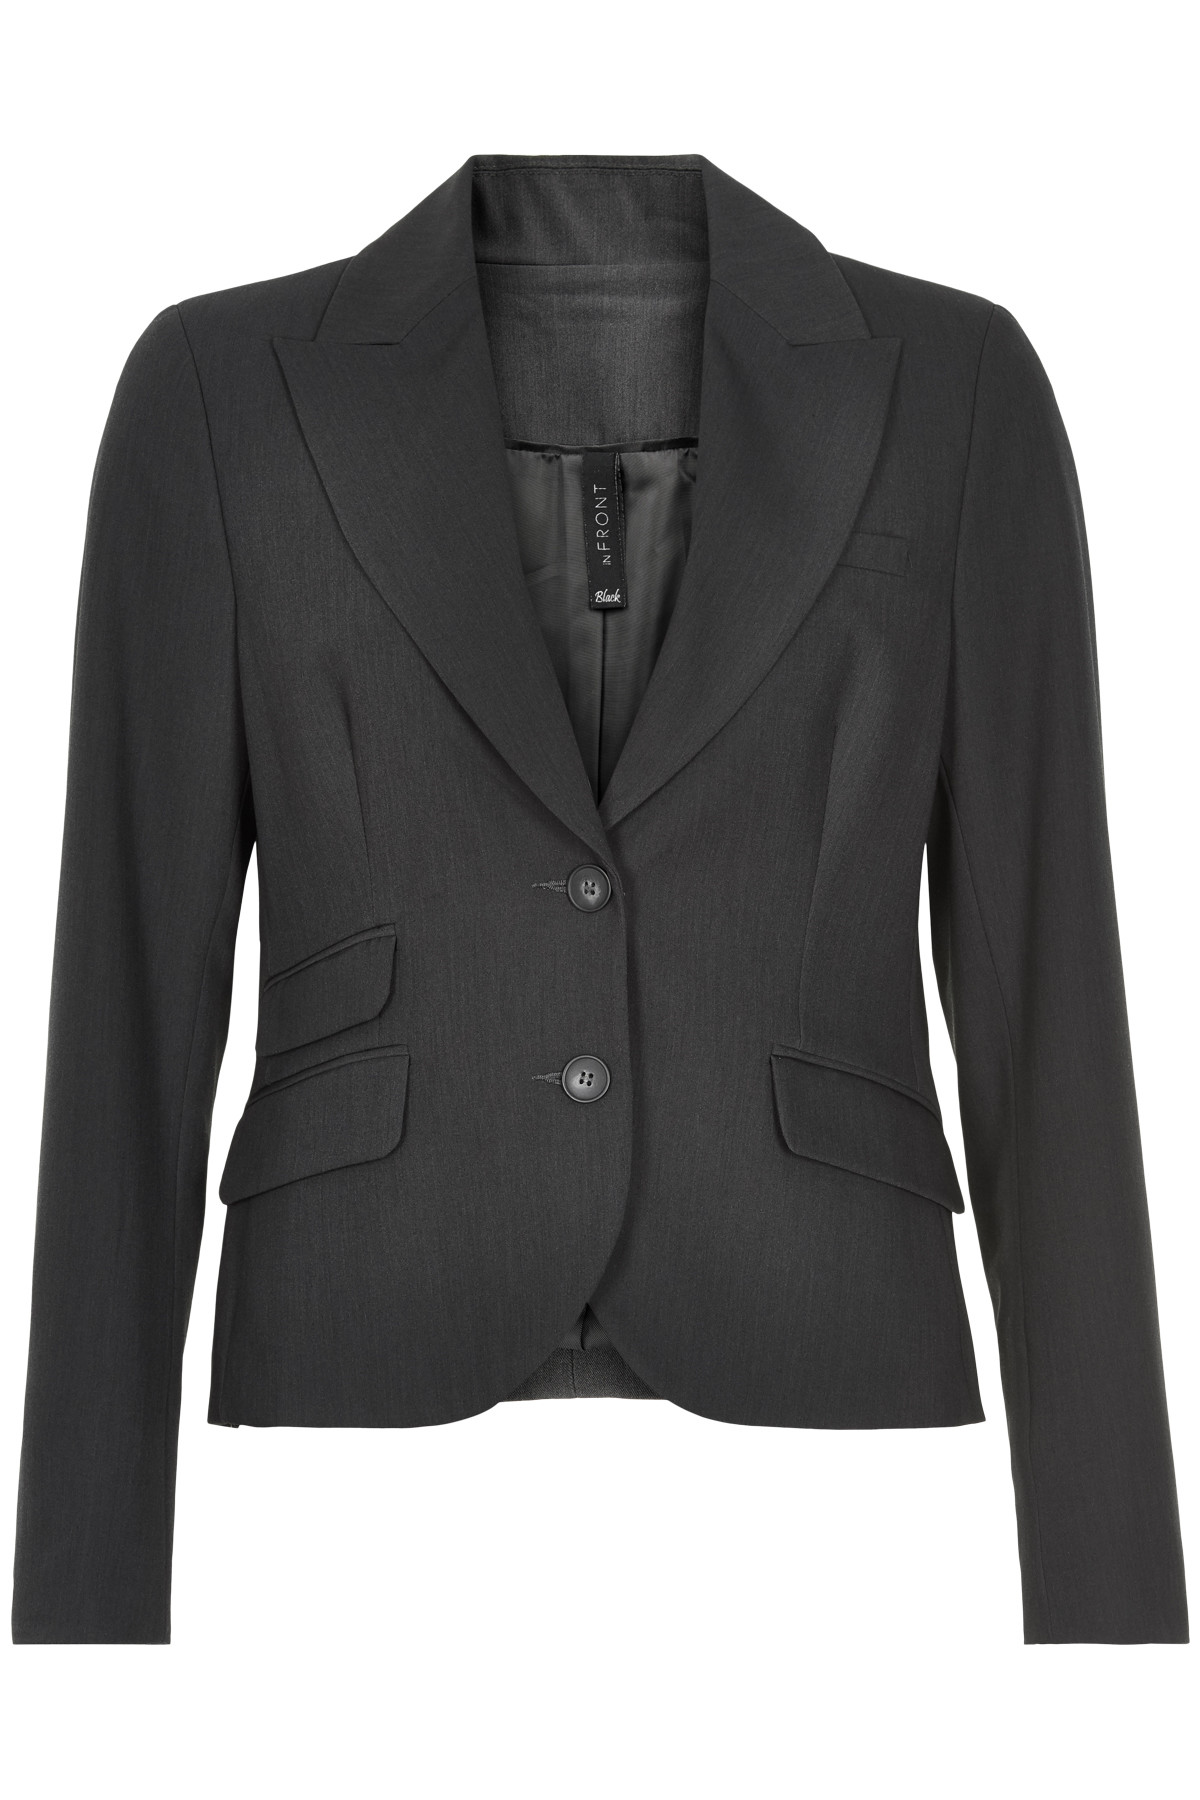 Image of   IN FRONT GYTA BLAZER 6222-650 D (Dark Grey Melange 950, 44)